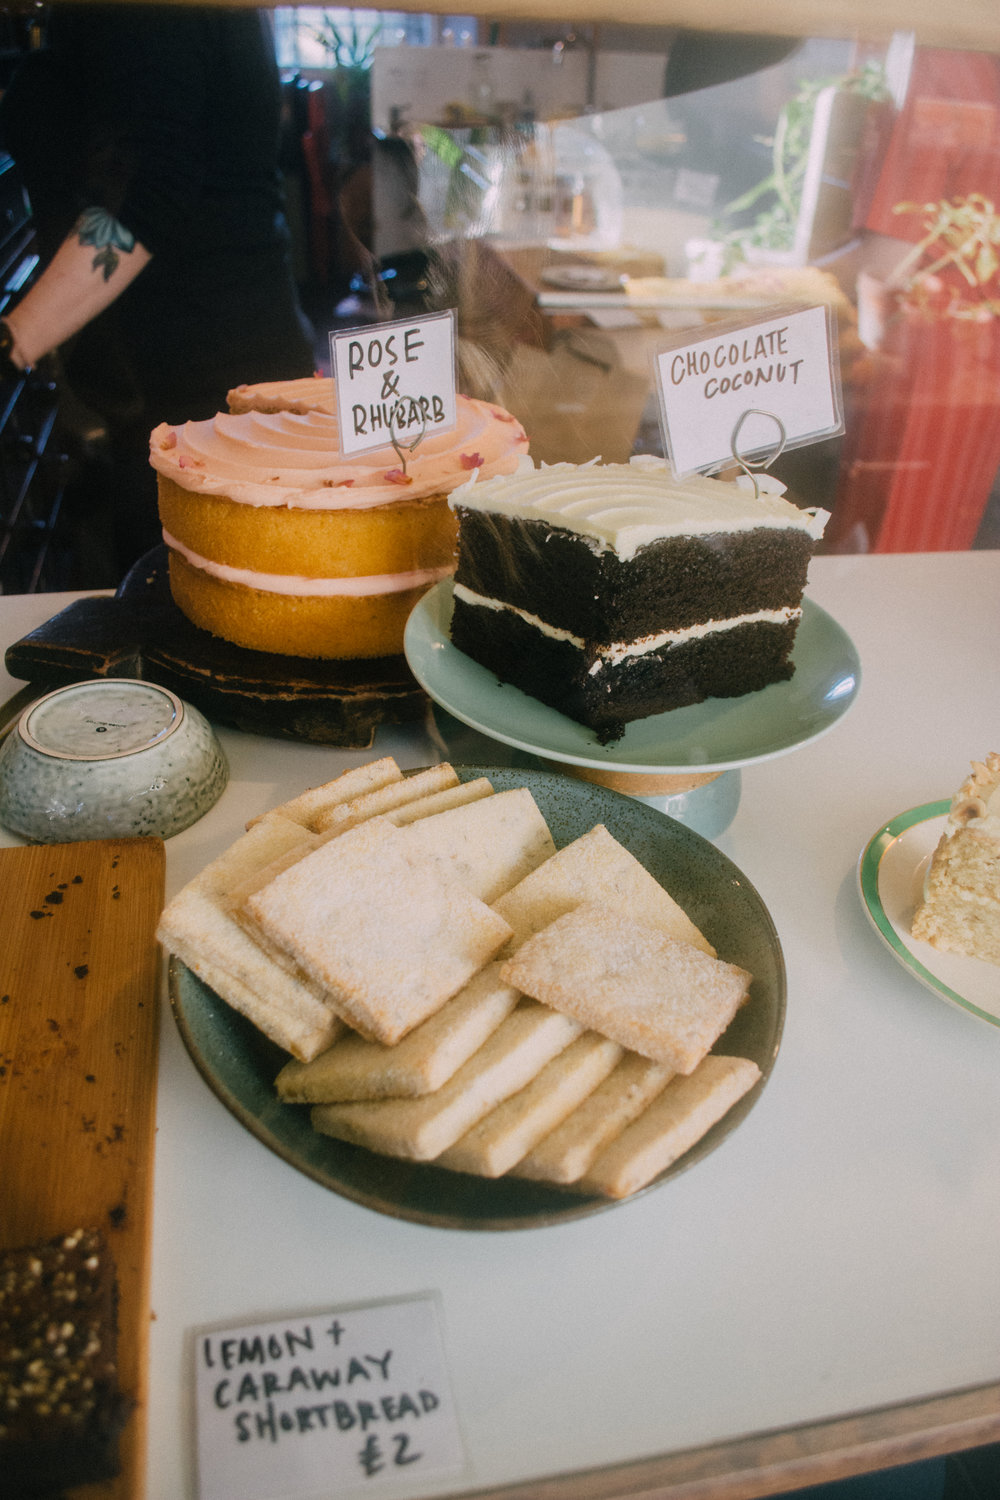 More cake, always.  - We found one of the cutest cake shops I've ever visited, Lovecrumbs, in downtown Edinburgh. The chocolate coconut cake was insanely delicious, and the space was warm and inviting.